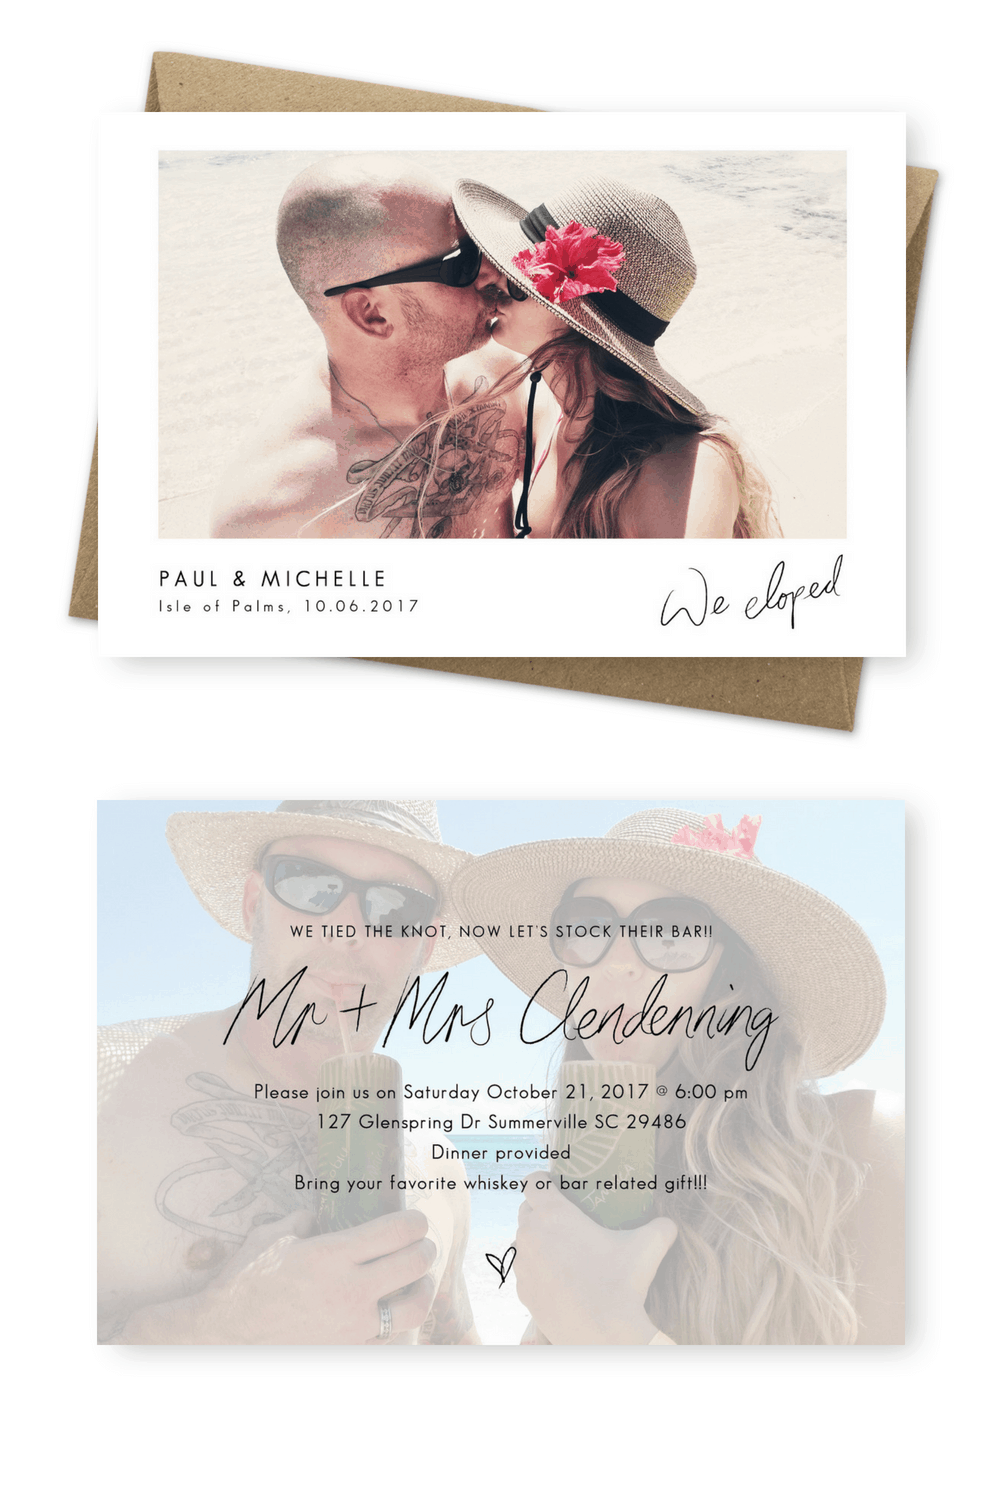 Wedding Announcement Cards and Elopement Invitation Ideas We Tied The Knot